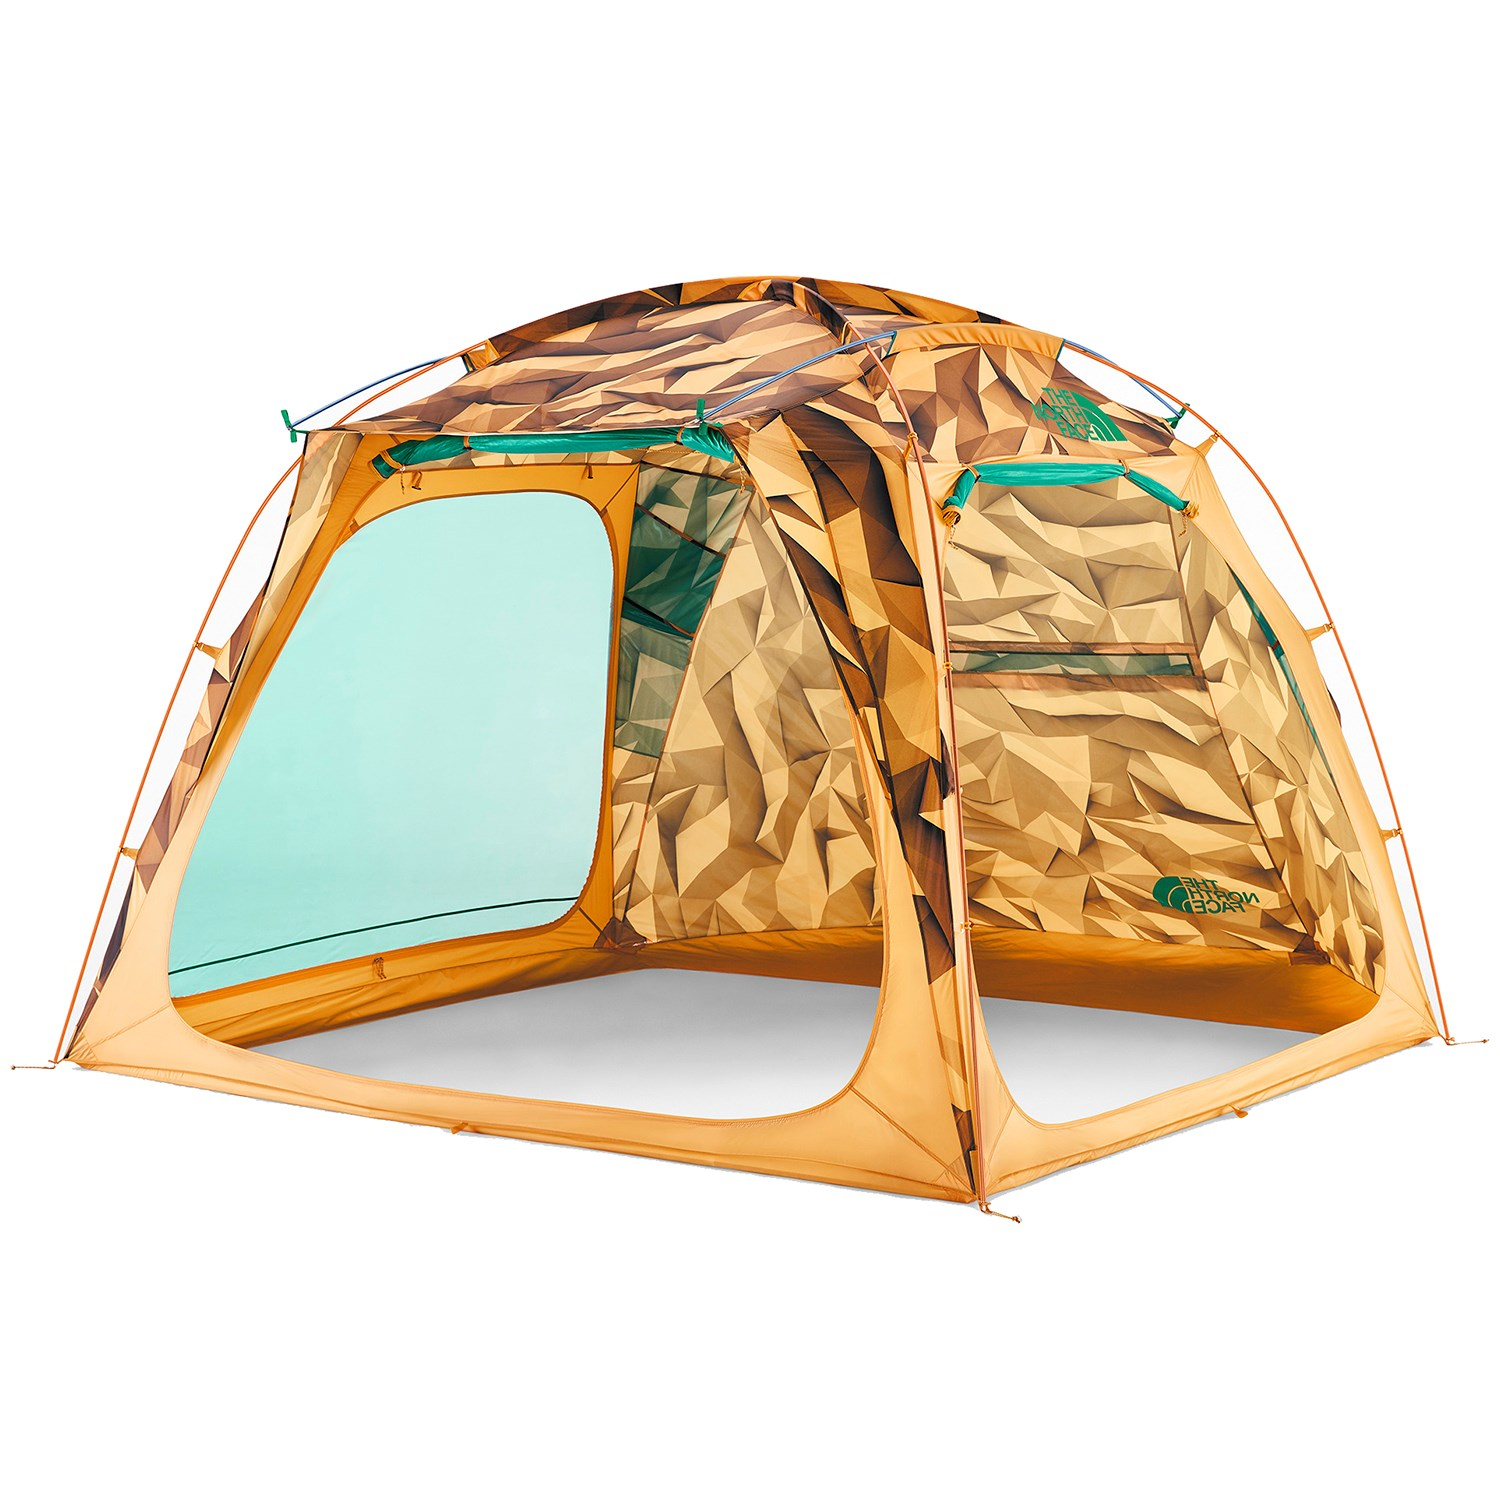 2eac9a50a The North Face Homestead Shelter